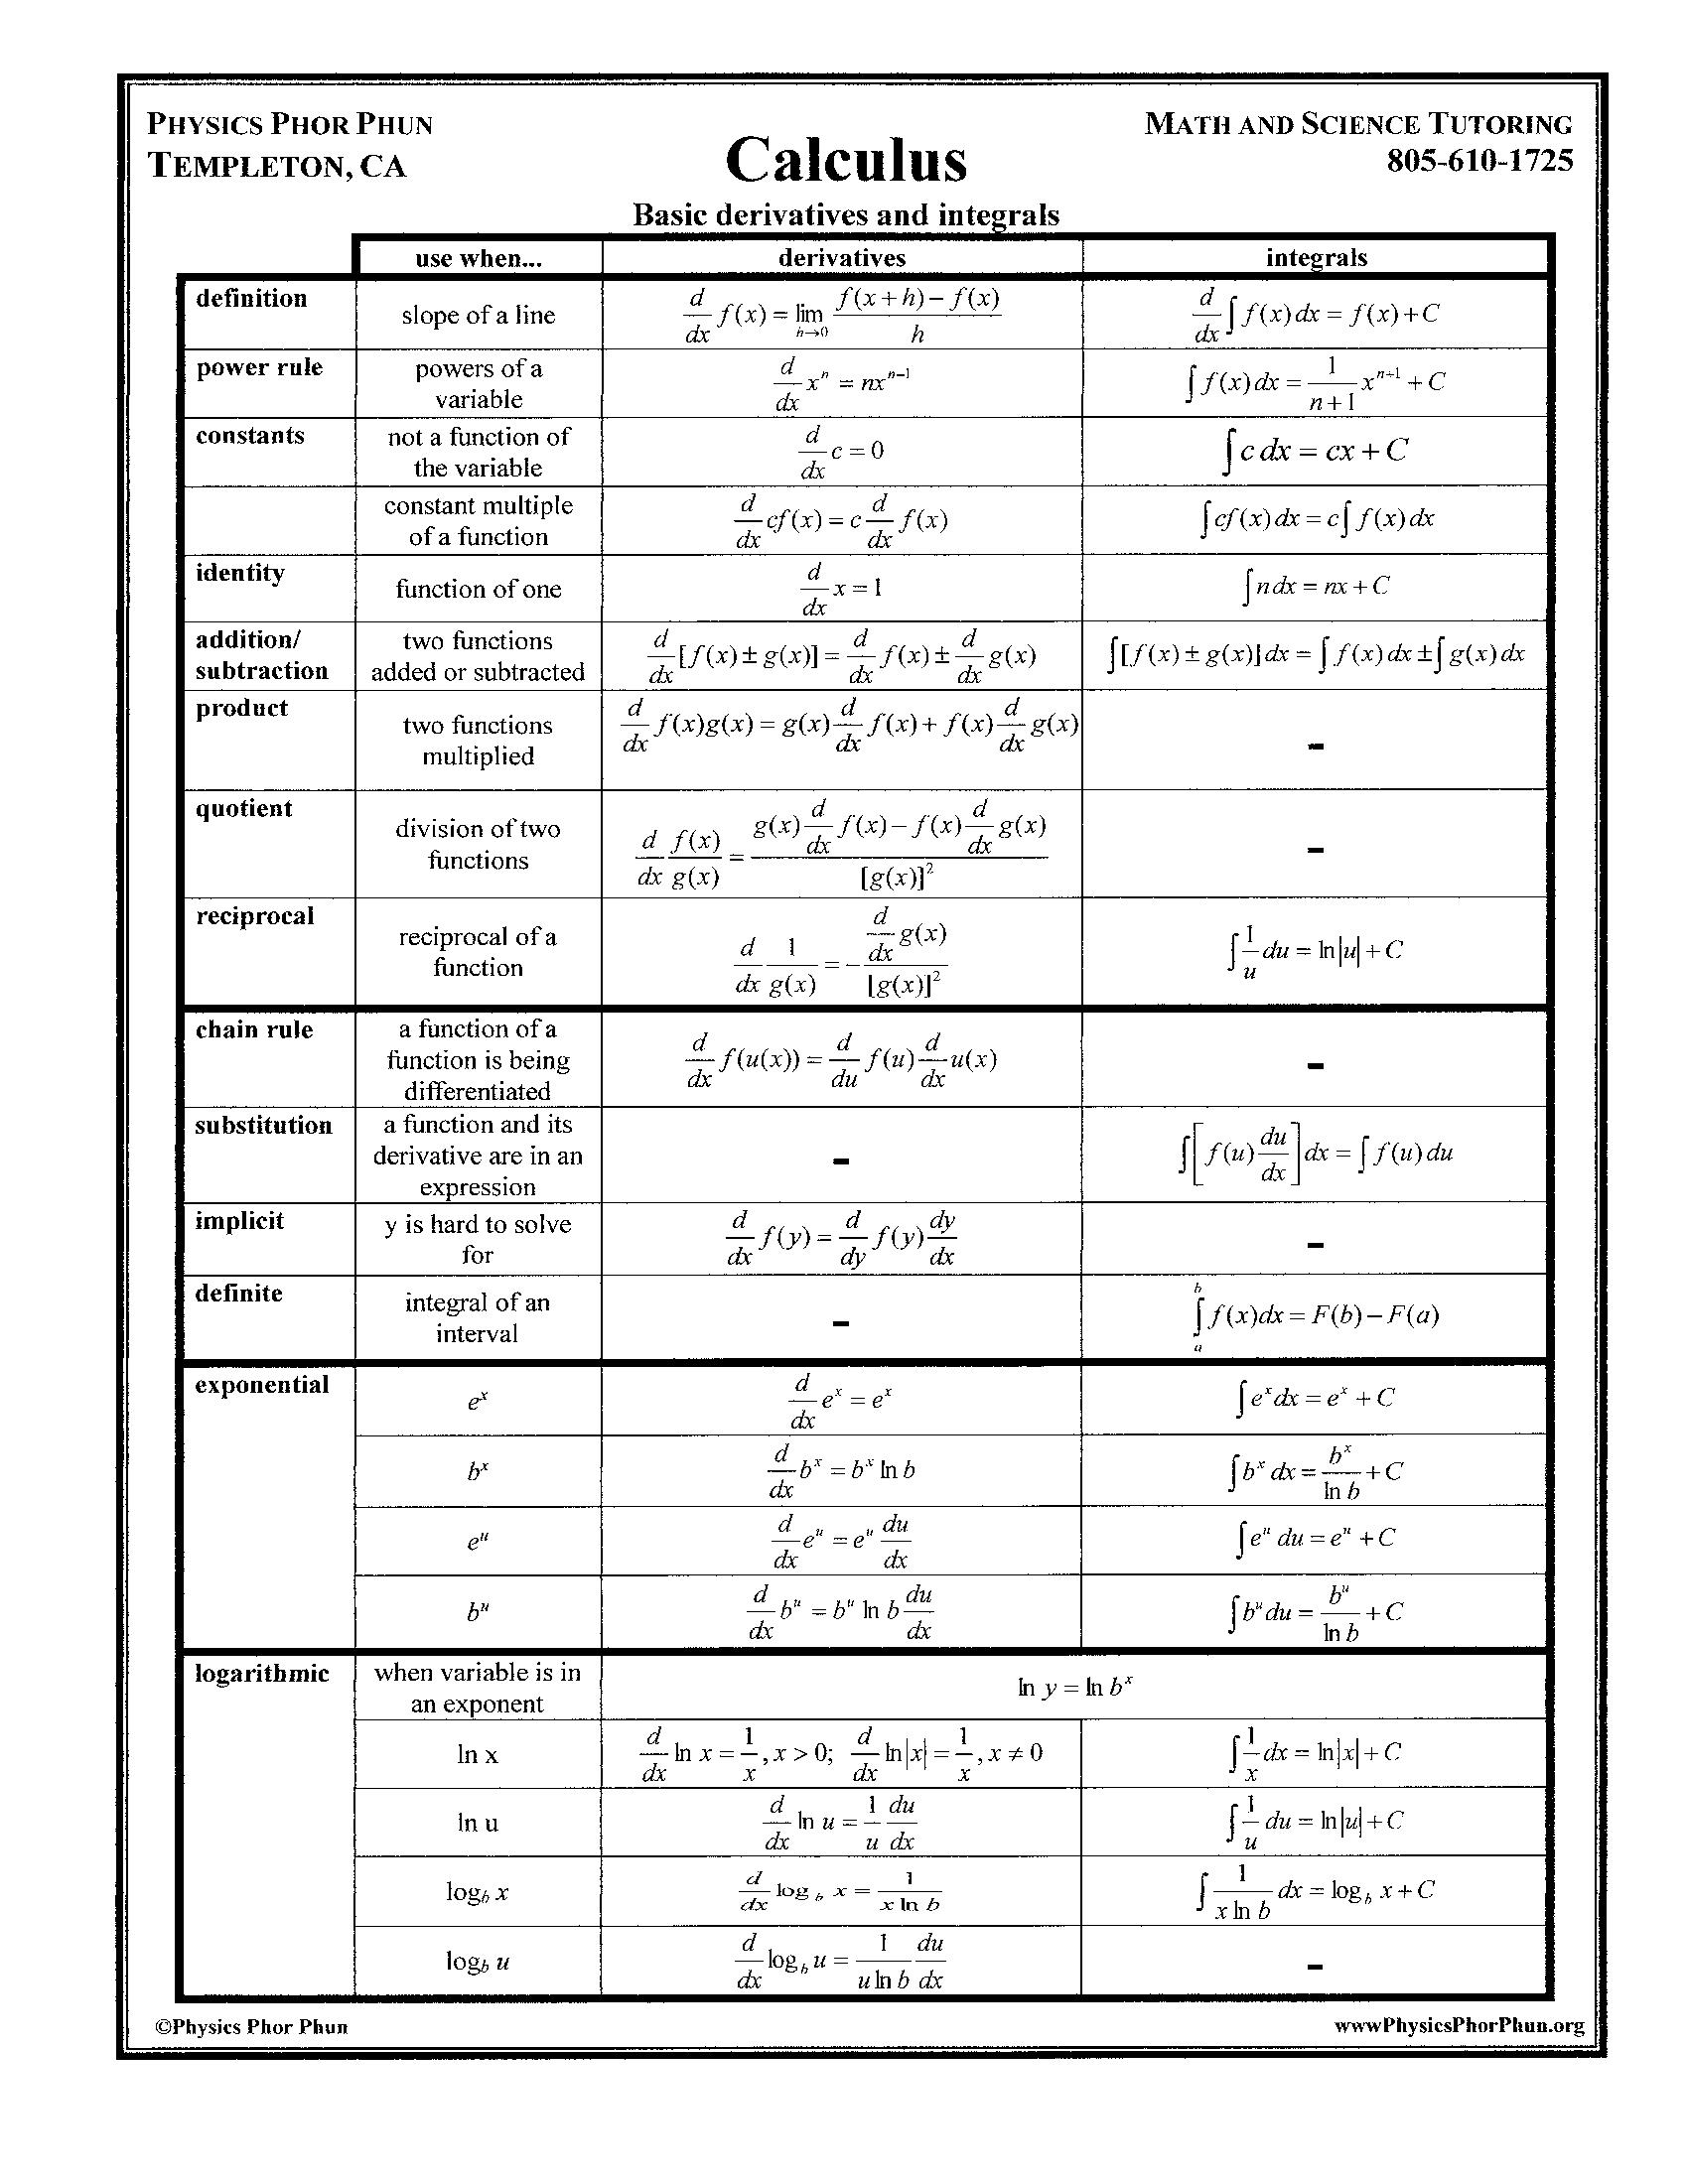 Math science products from physics phor phun for Table of derivatives